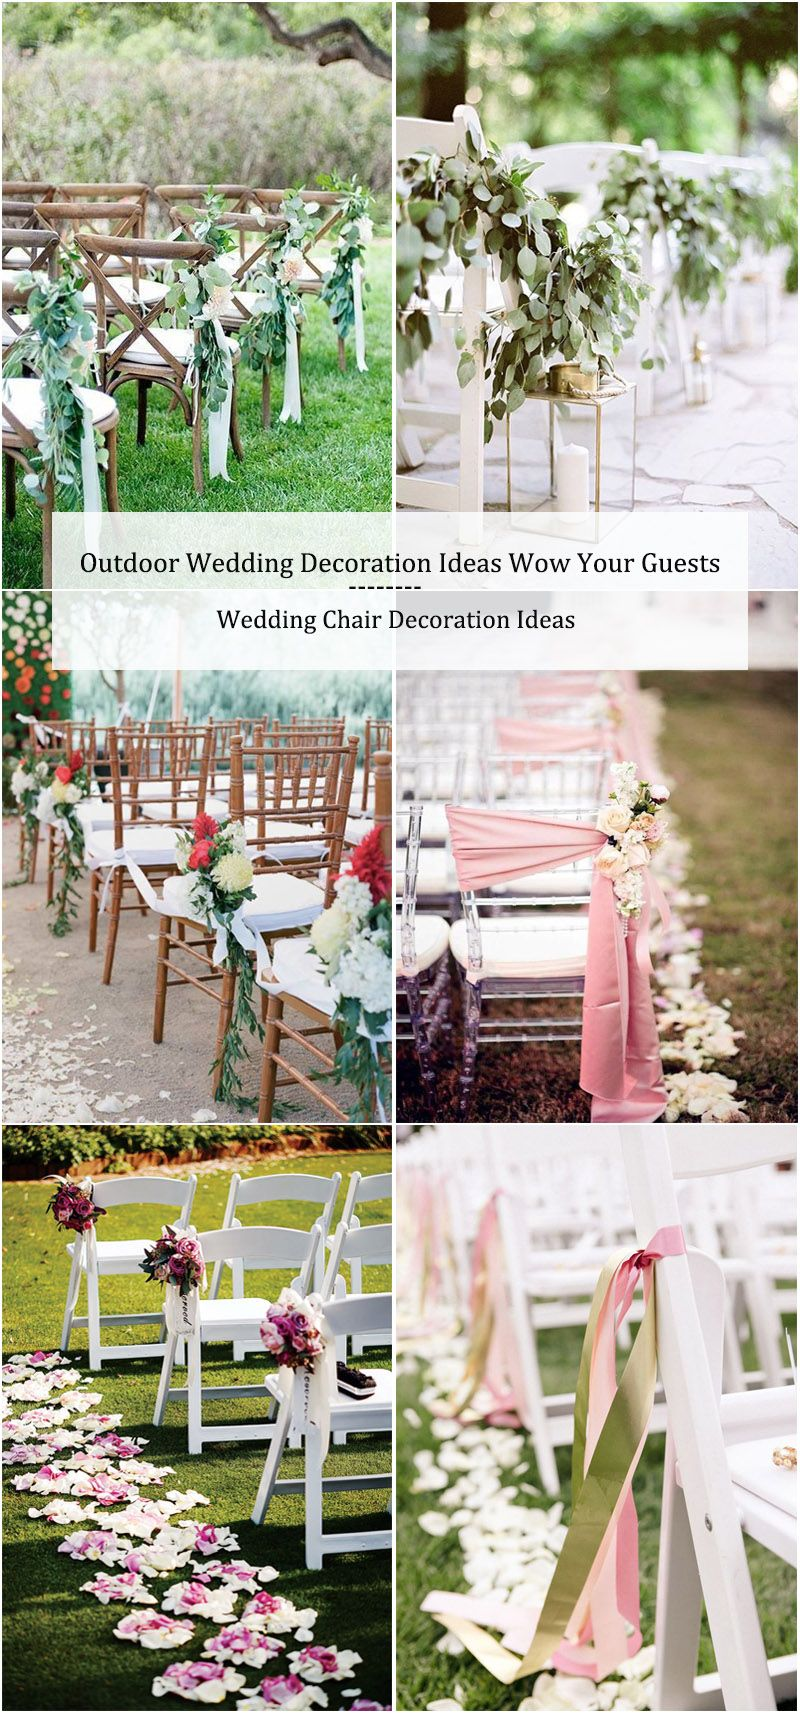 30 Outdoor Wedding Decoration Ideas Wow Your Guests With Images Outdoor Wedding Decorations Outdoor Wedding Wedding Decorations